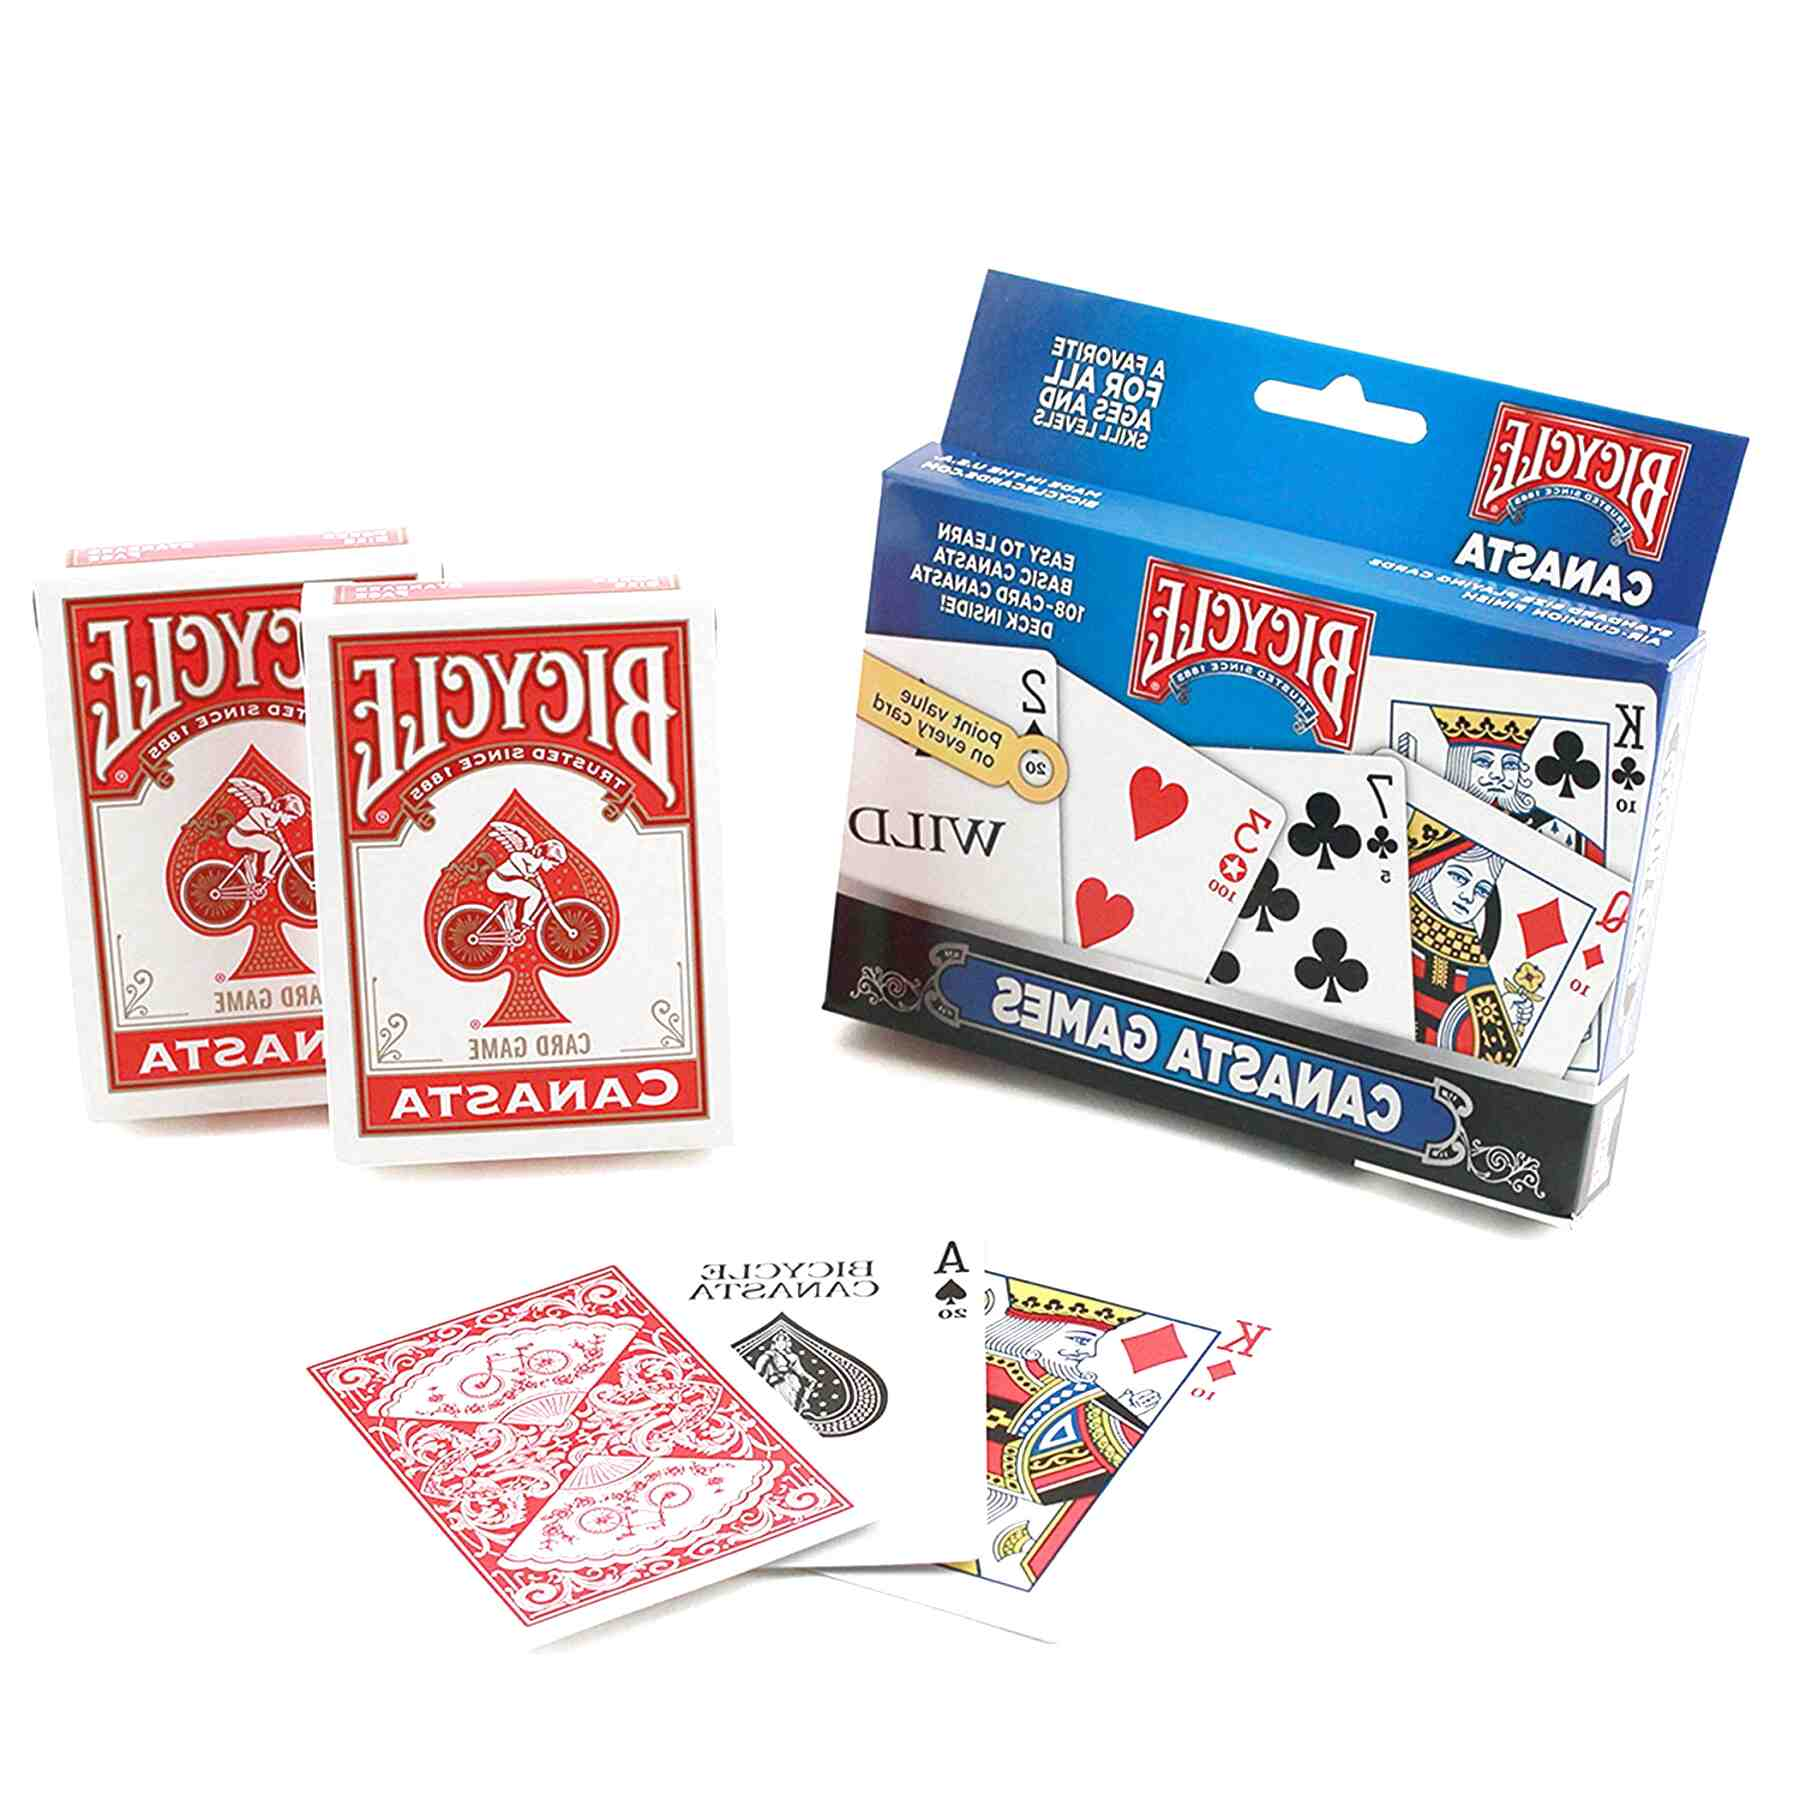 Canasta Playing Cards For Sale In UK